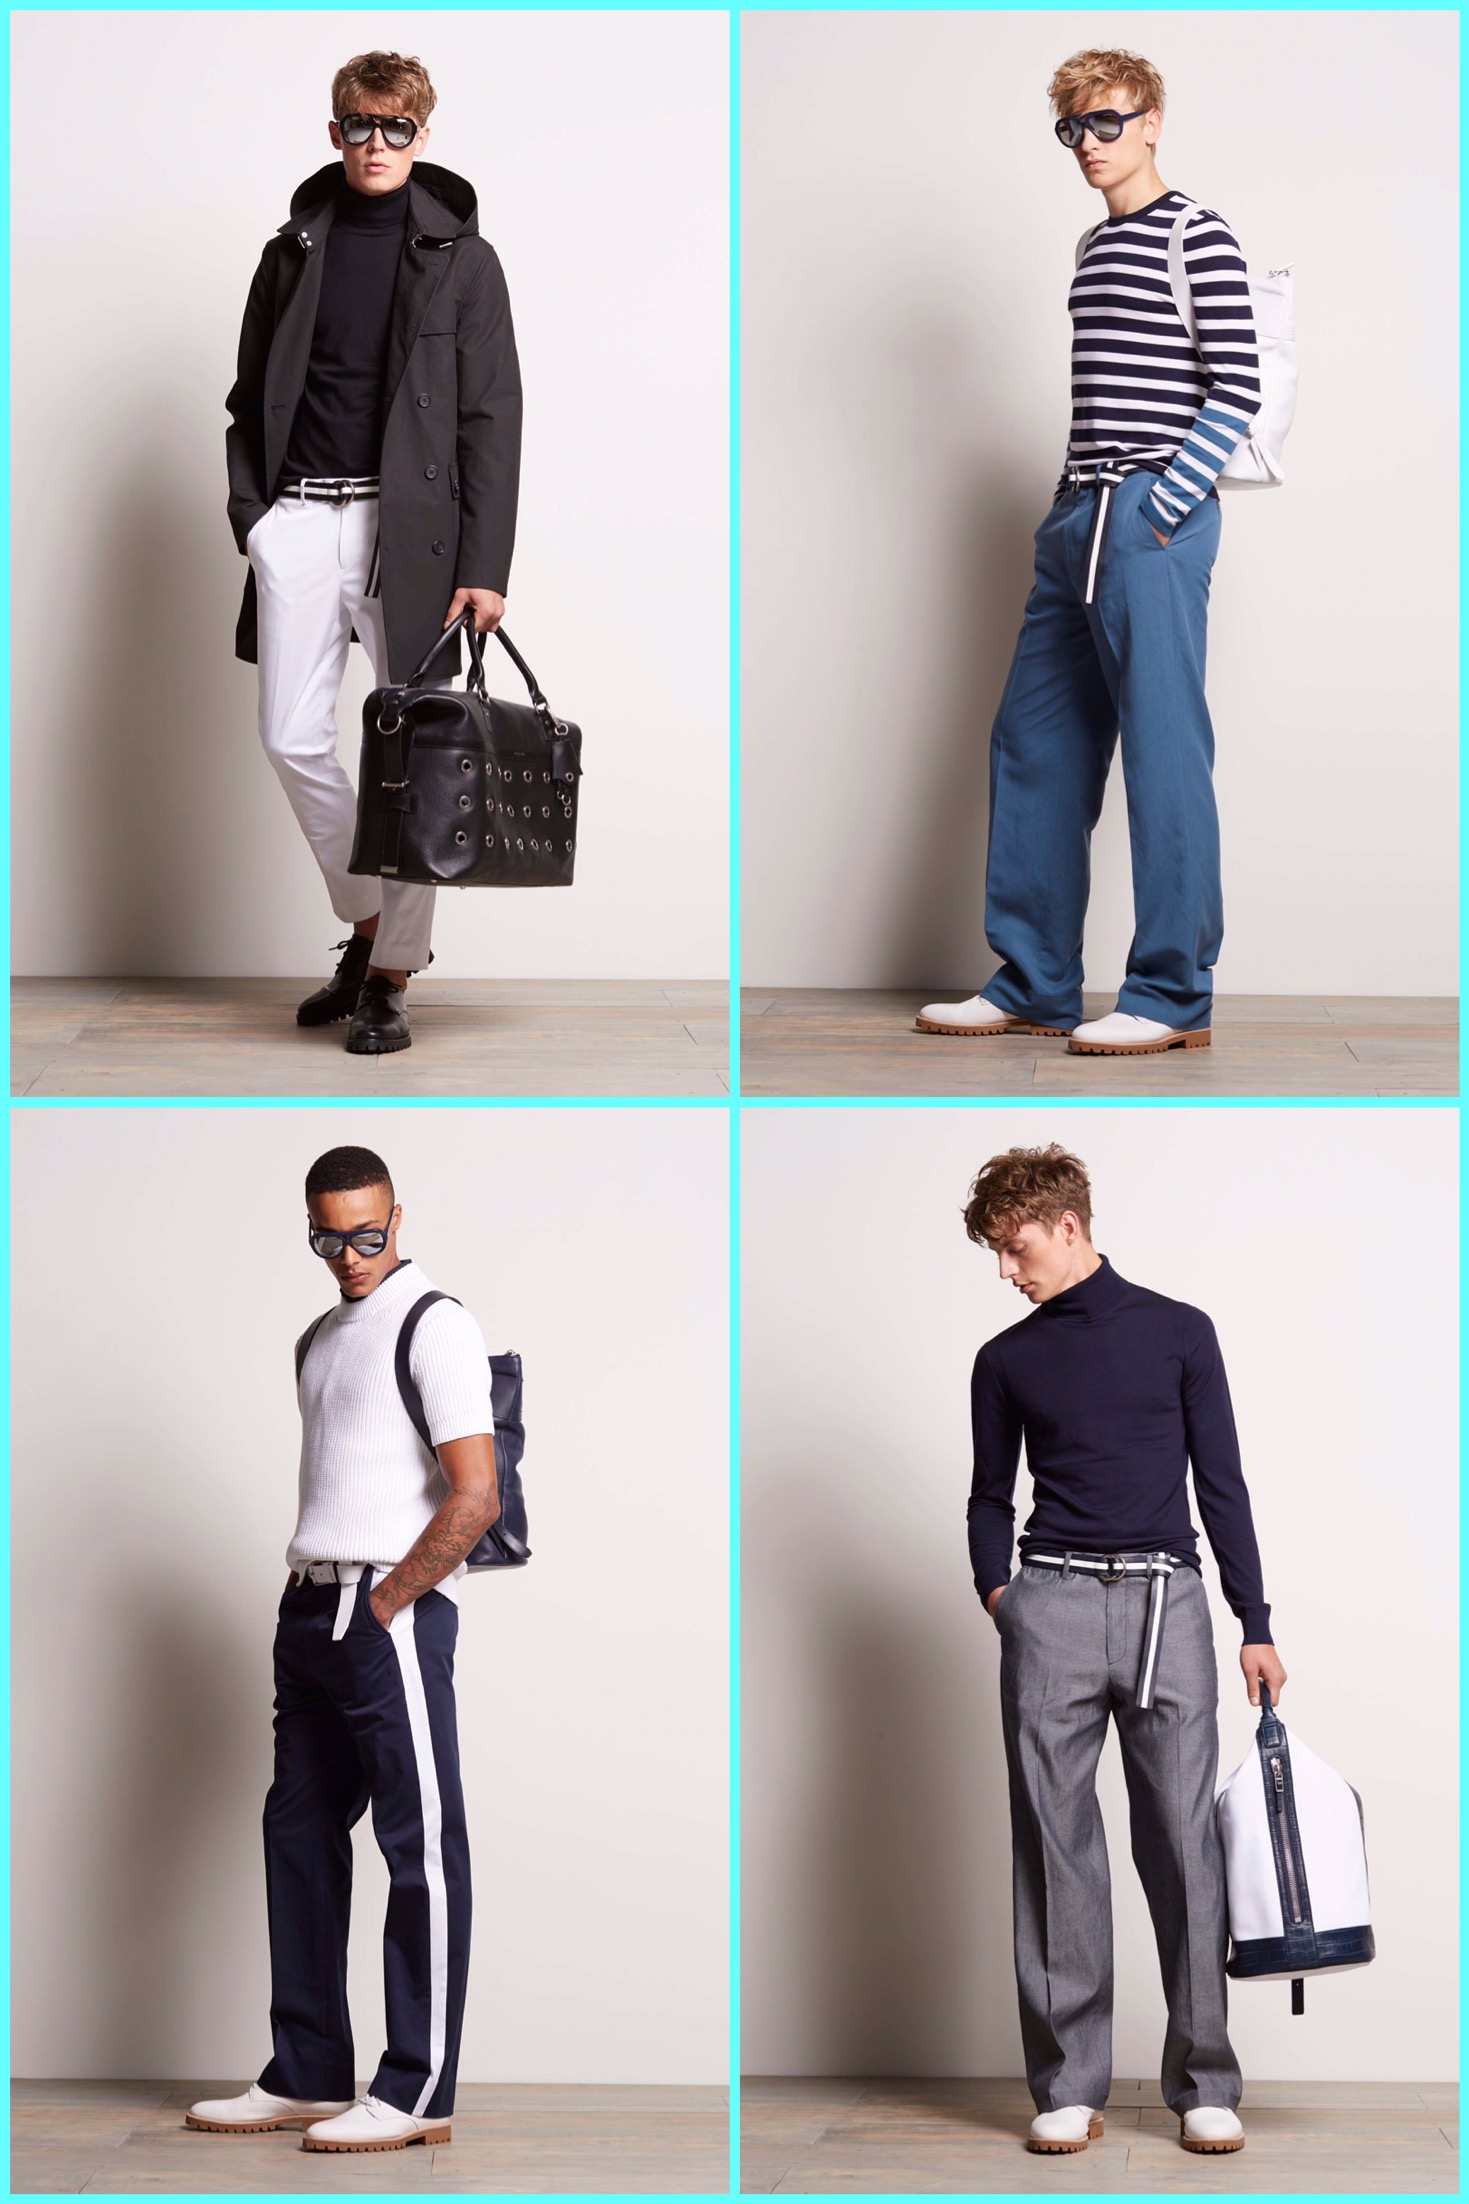 ny-fashion-week-menswear-spring-summer-2017-style-michael-kors-collection